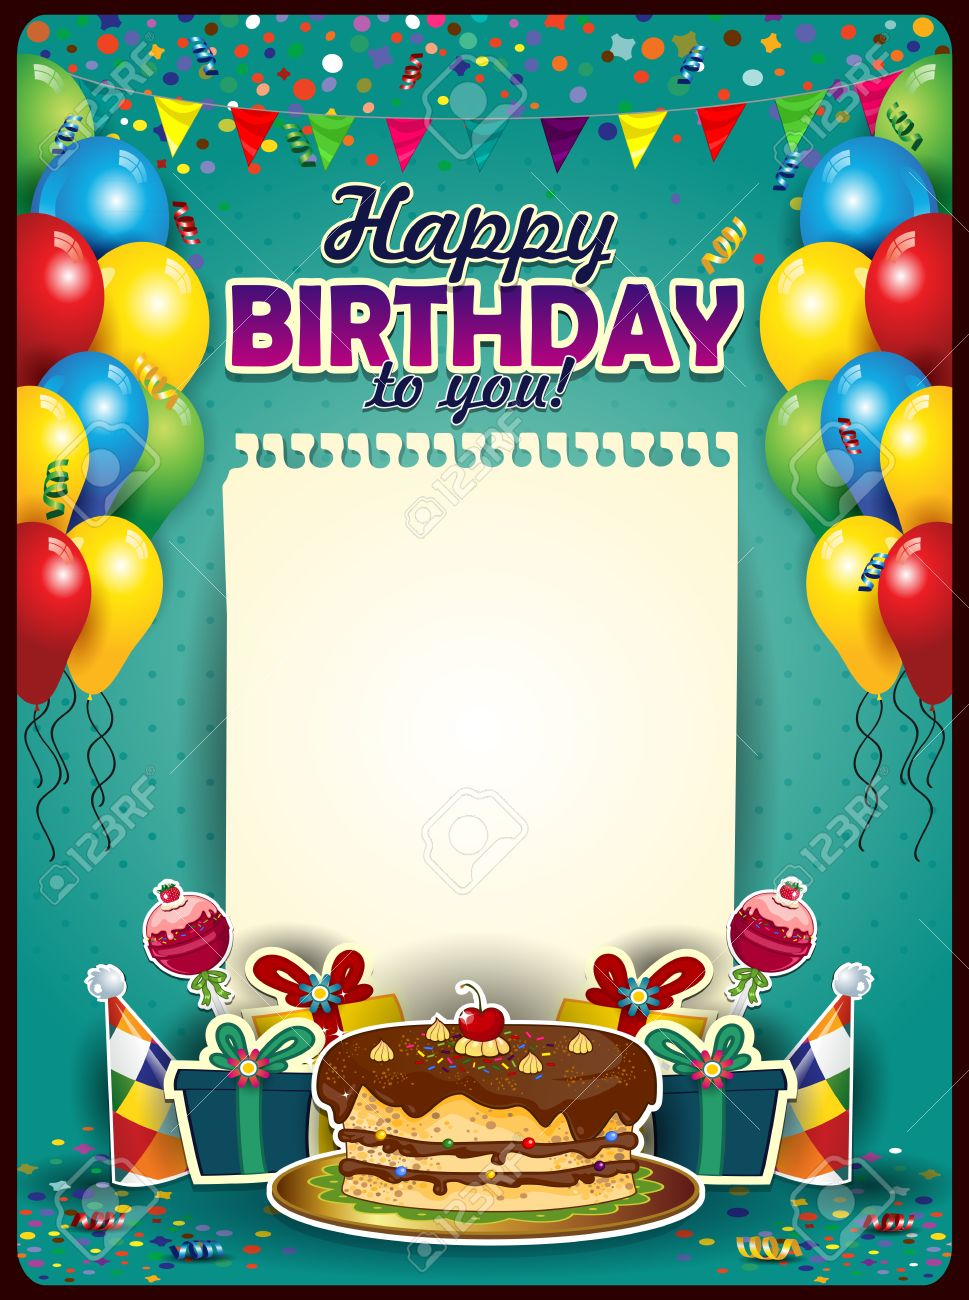 happy birthday insert photo free ; 29138651-happy-birthday-with-a-sheet-of-paper-vertically-with-balloons-and-cake-space-to-insert-your-text-tra-Stock-Photo